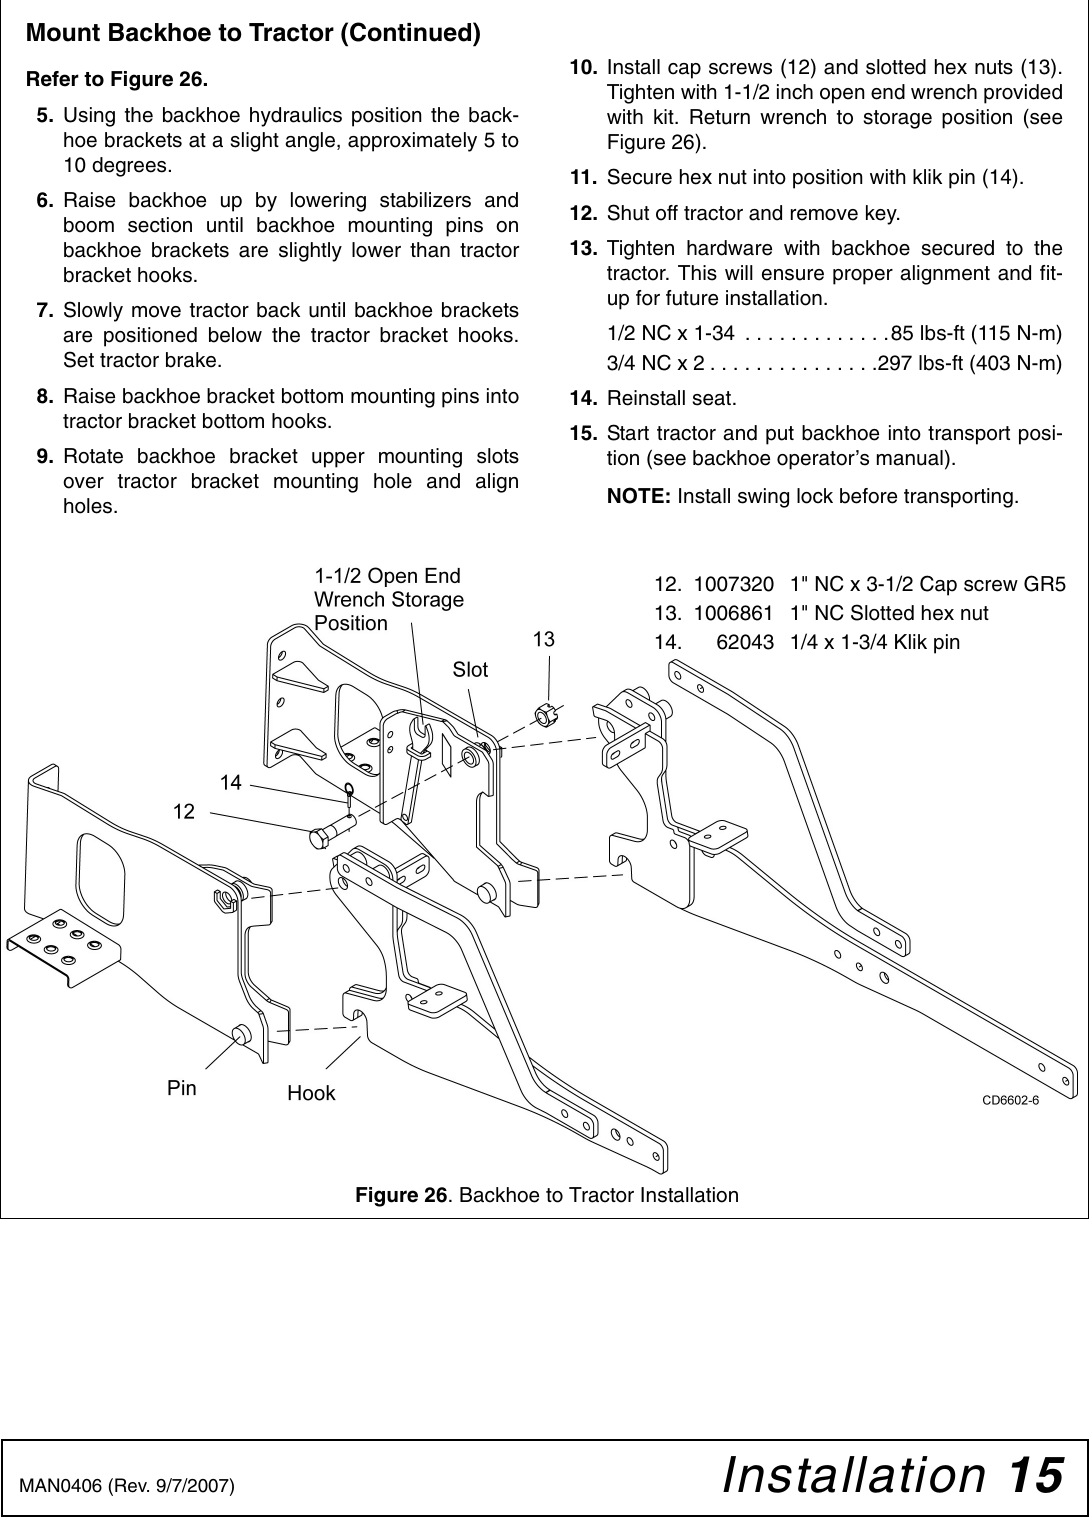 Woods Equipment 1013460 Users Manual Sub Frame Mounting Kit